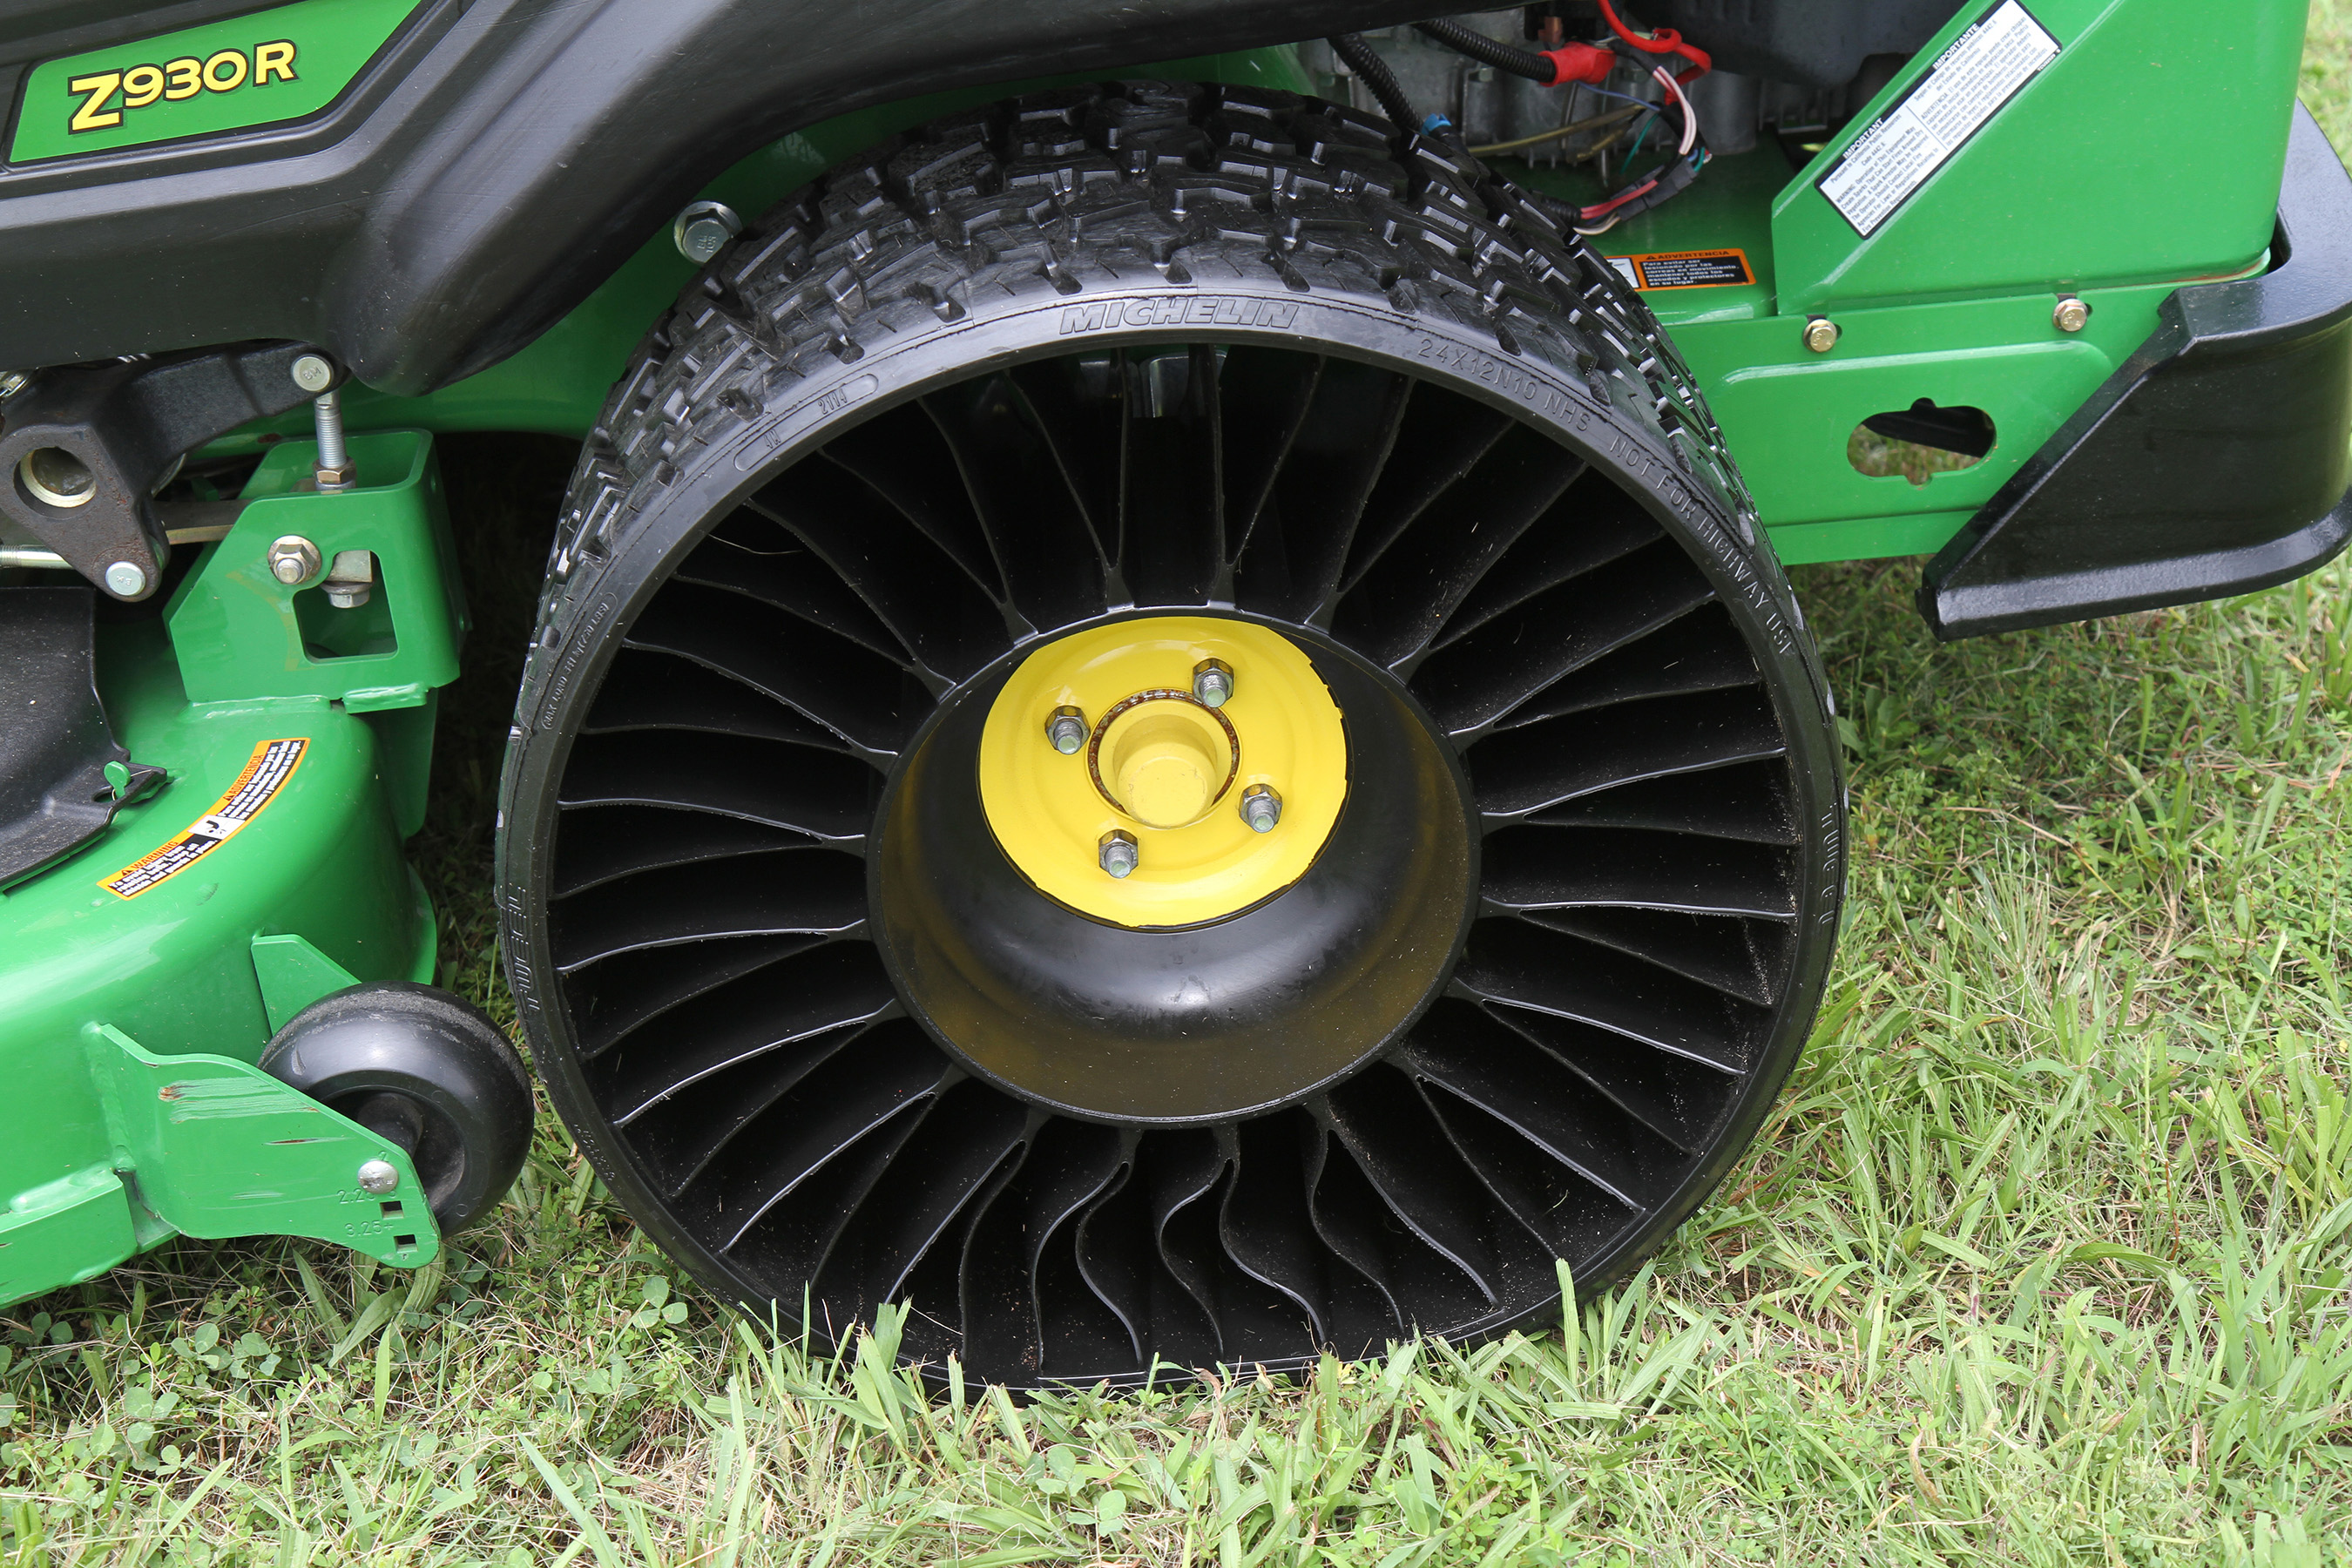 Michelin To Provide Airless Radial Tire For John Deere